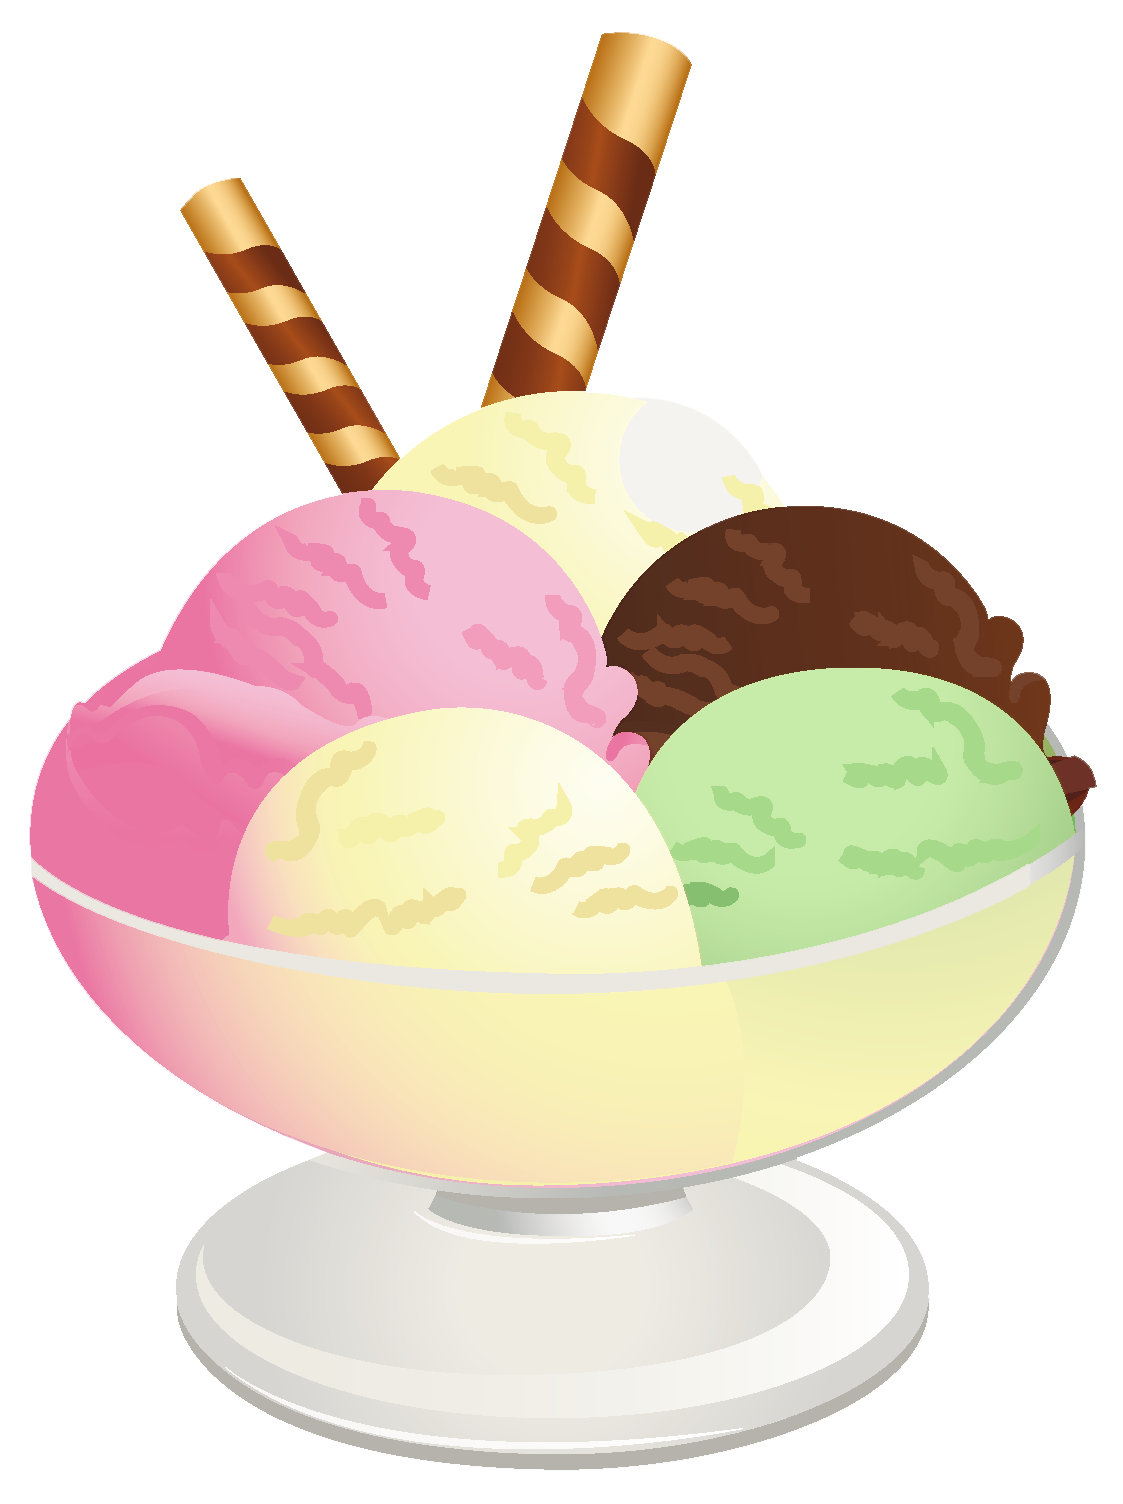 Essen trinken clipart banner freeuse library Ice Cream Sundae PNG Picture | SCRAP DIGITAL | Pinterest | Essen ... banner freeuse library